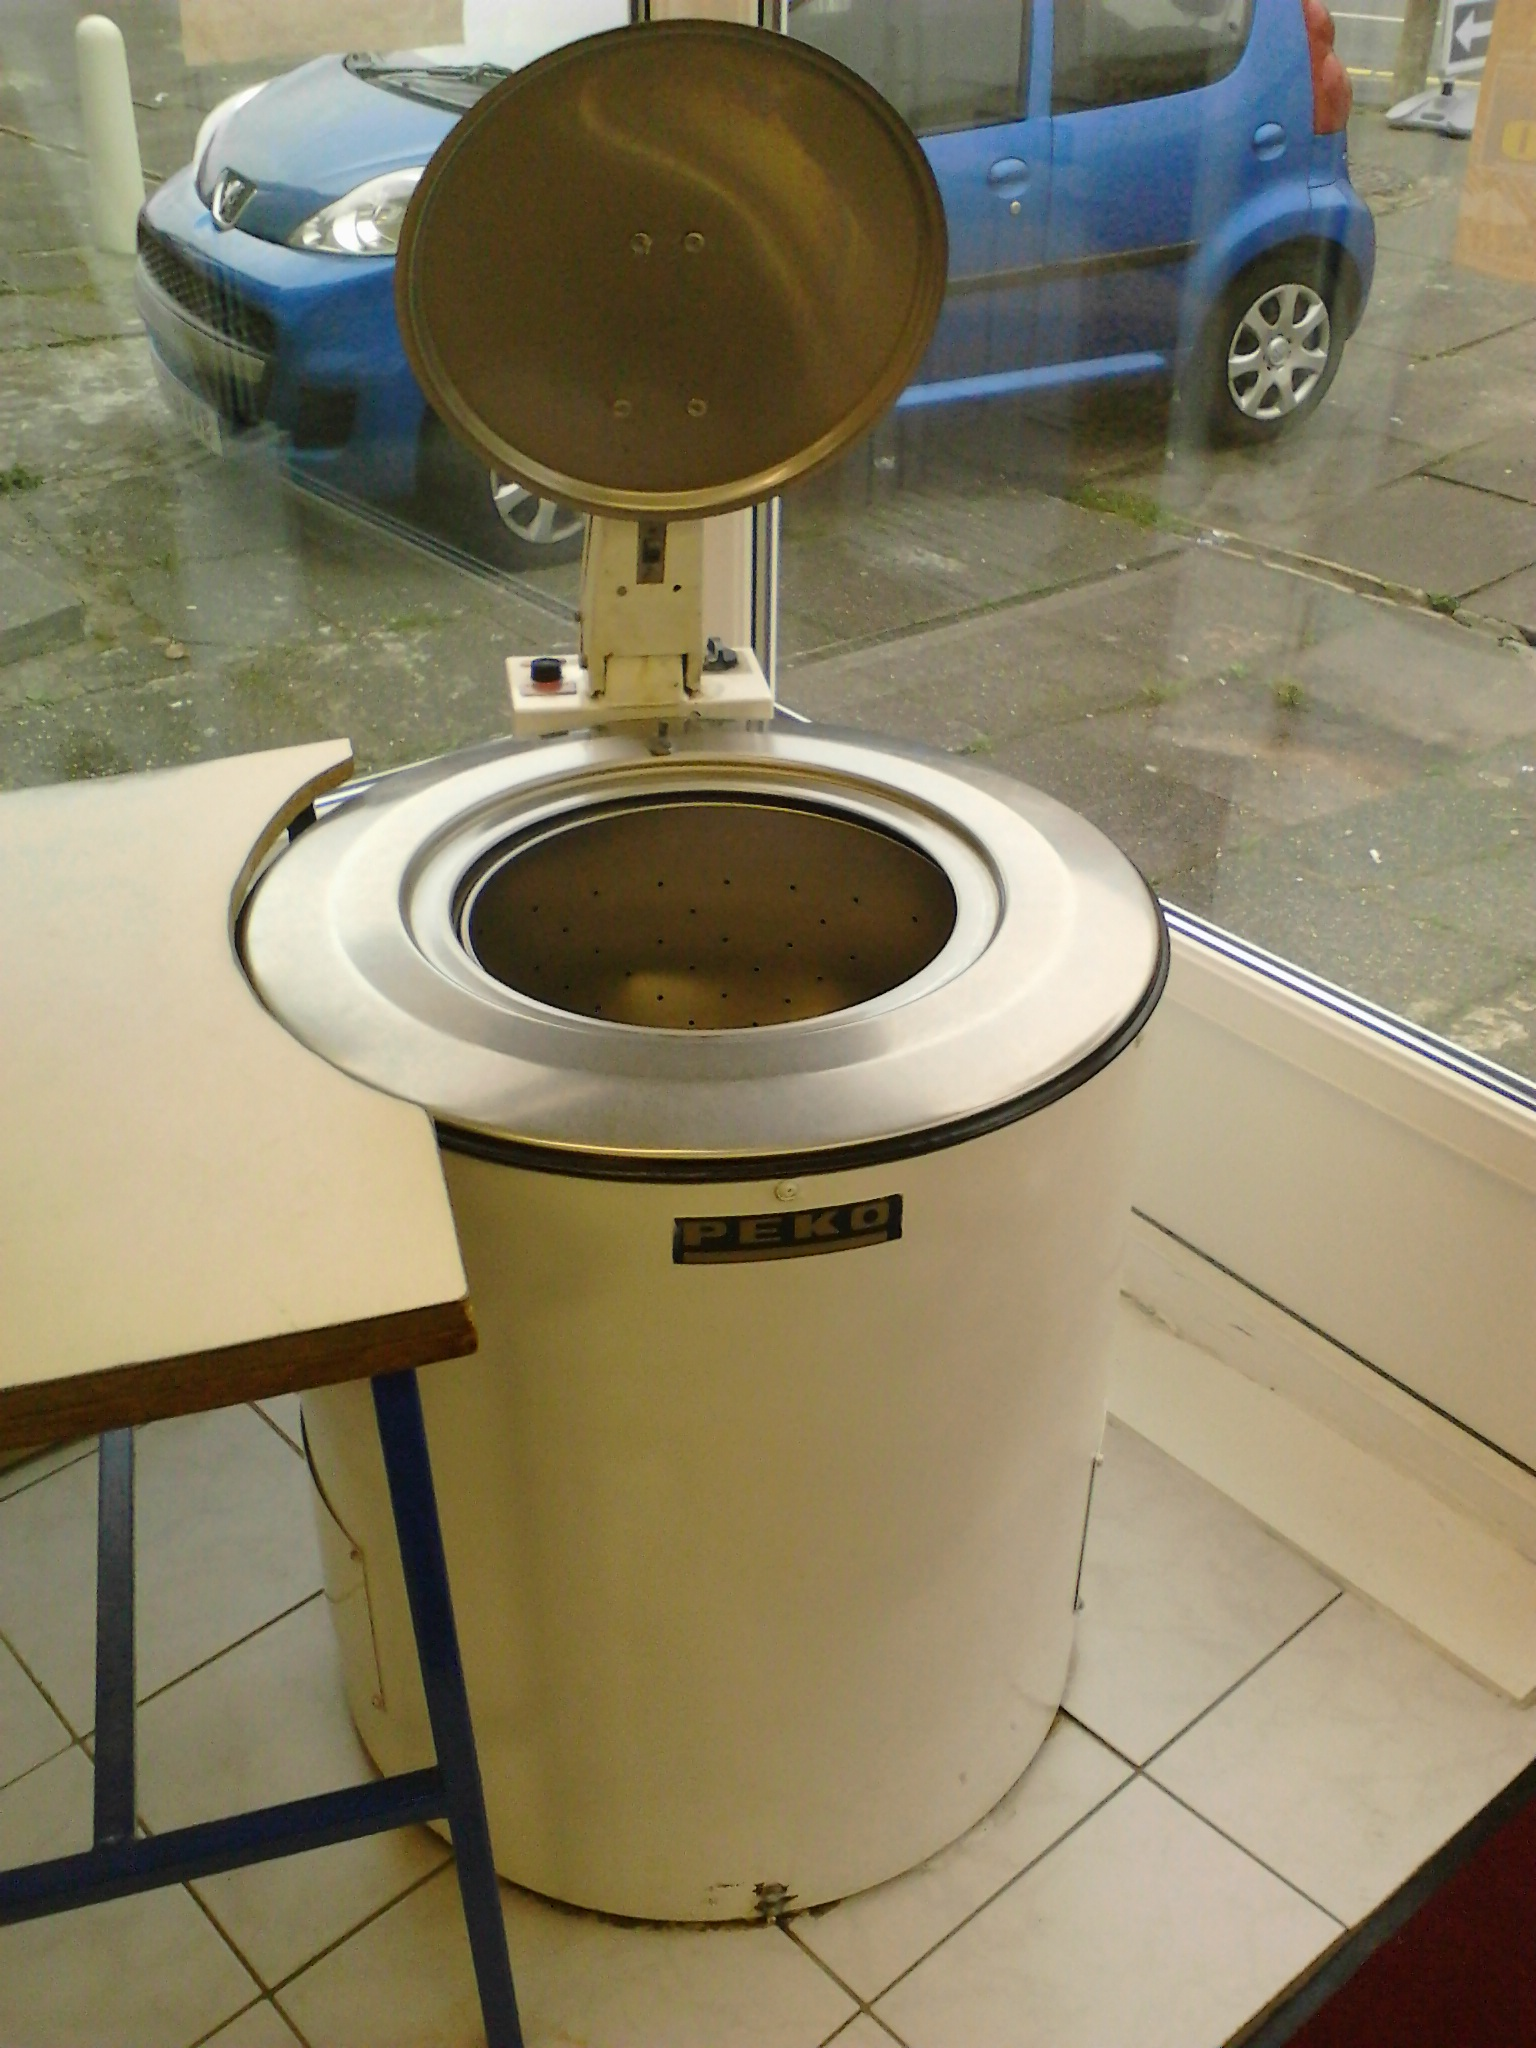 Kings Launderette Extractor.jpg